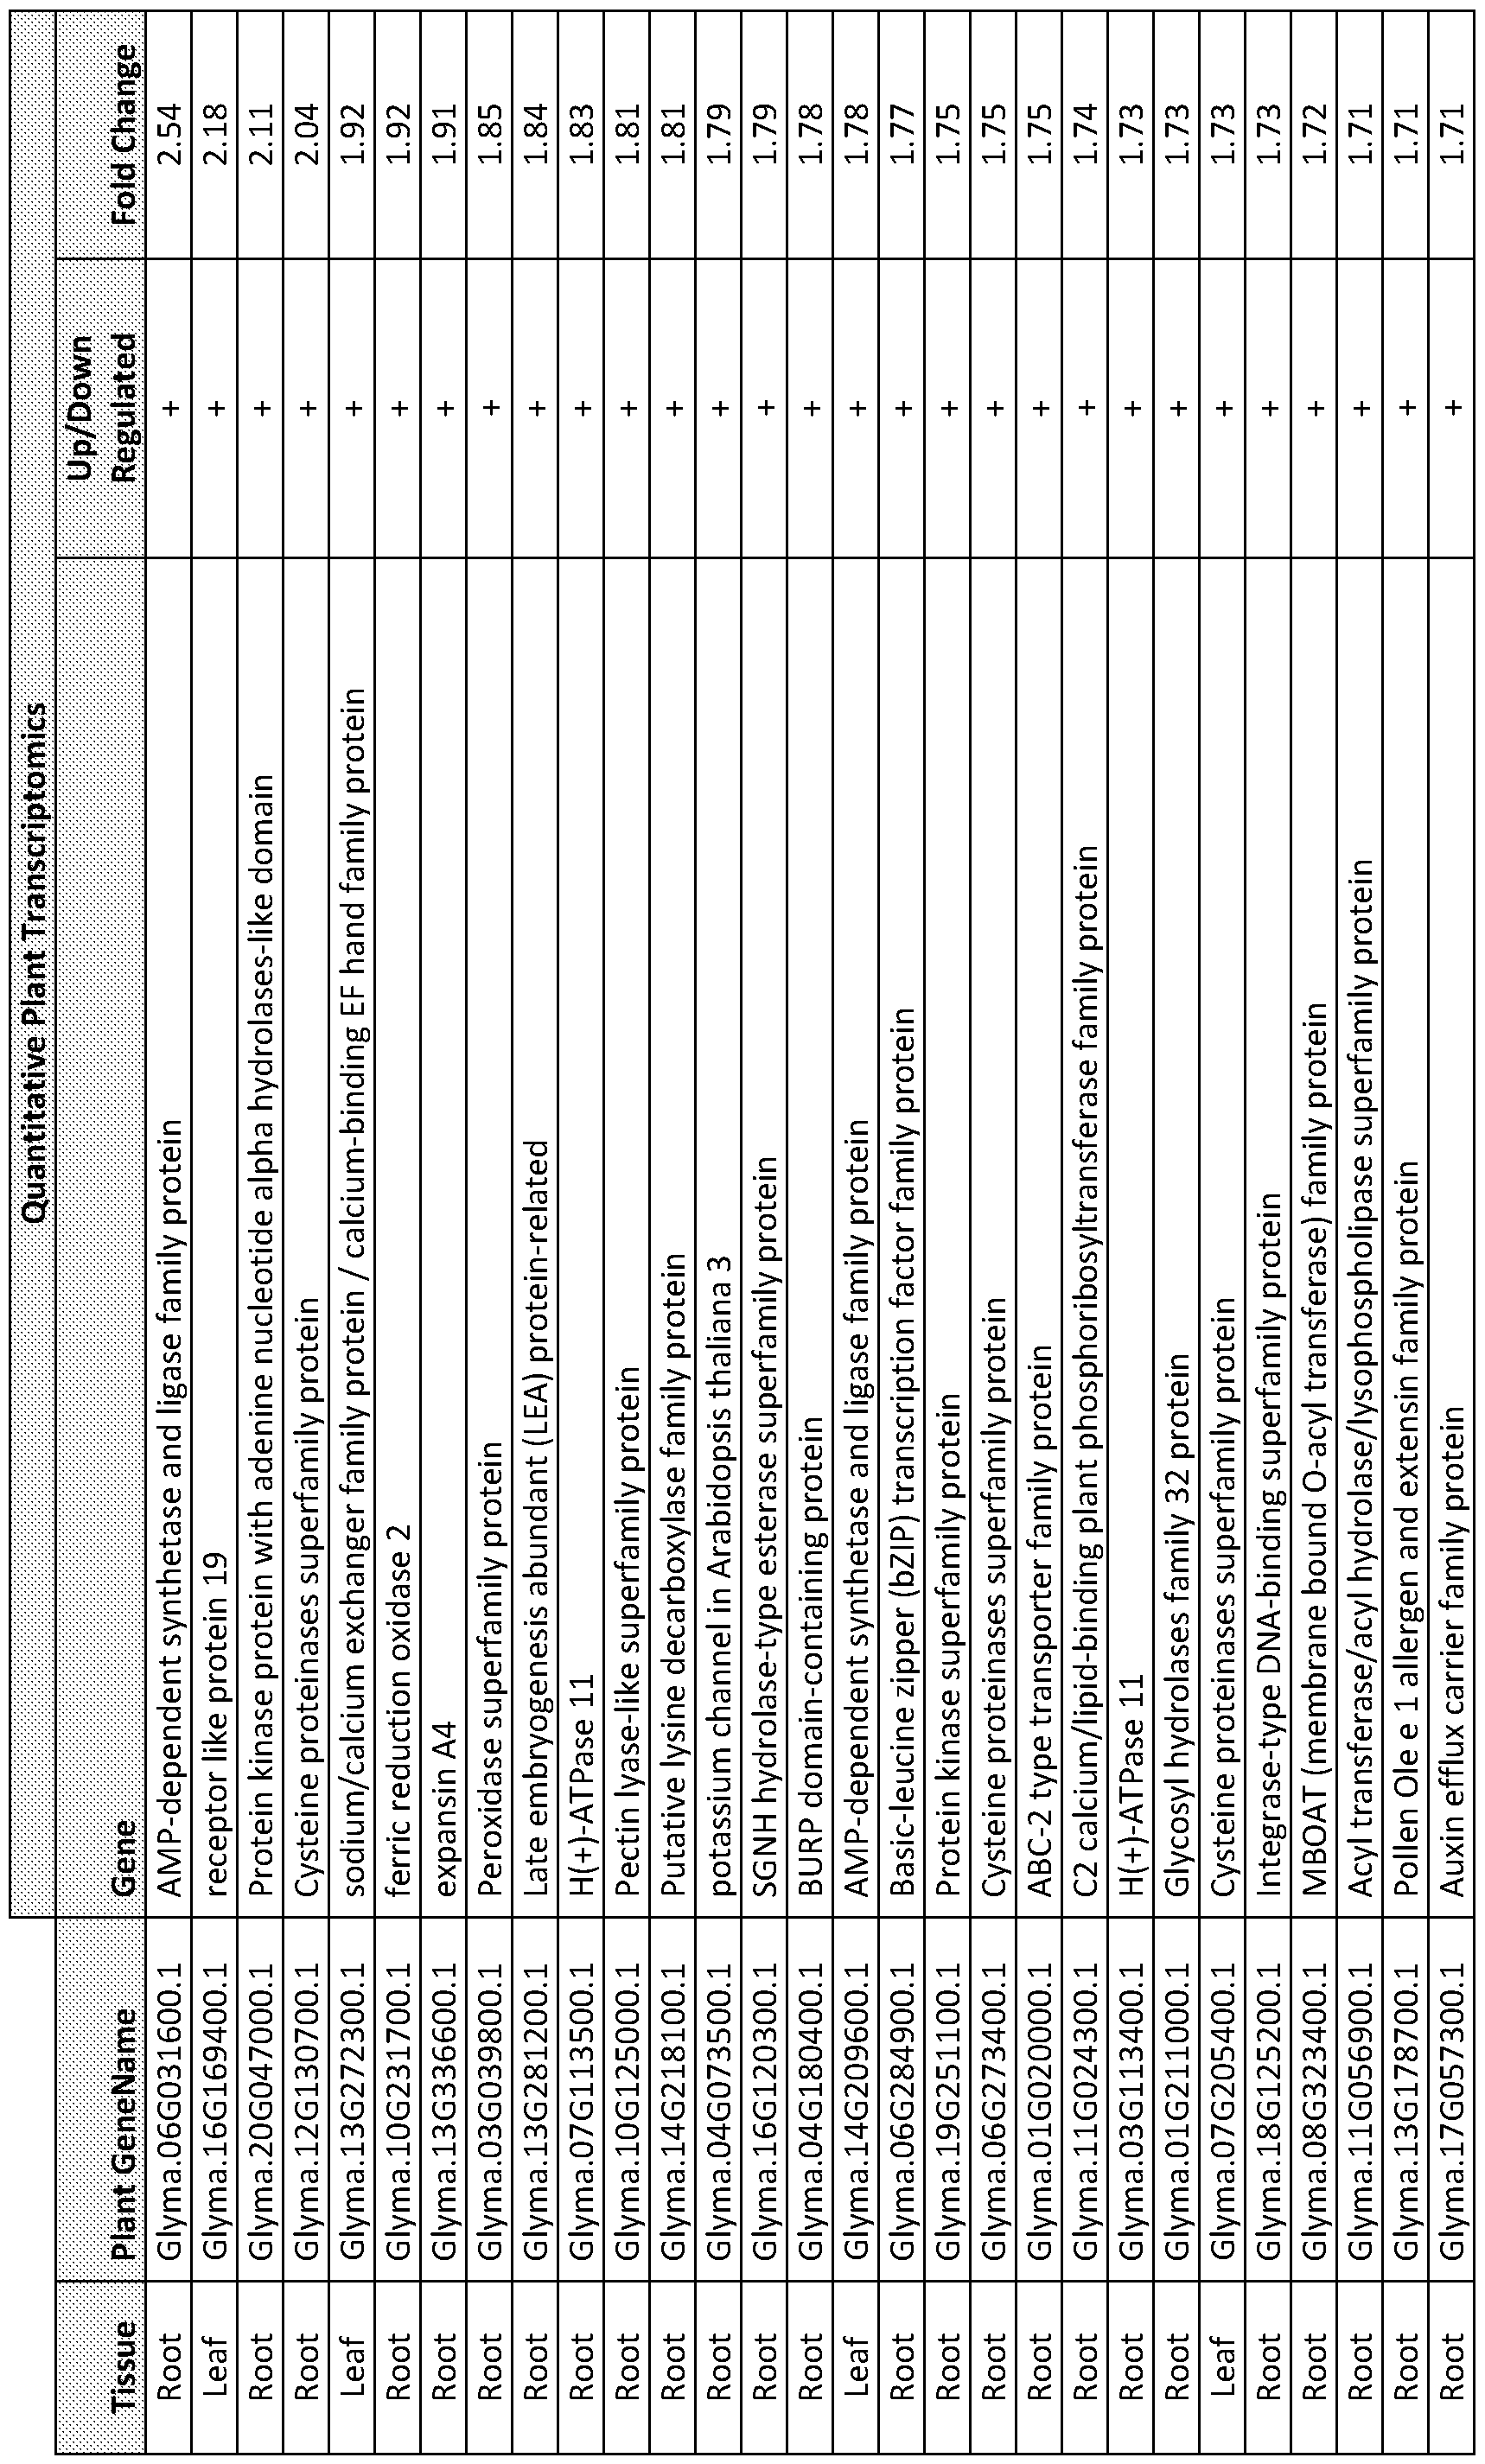 WO2016210238A1 - Penicillium endophyte compositions and methods for